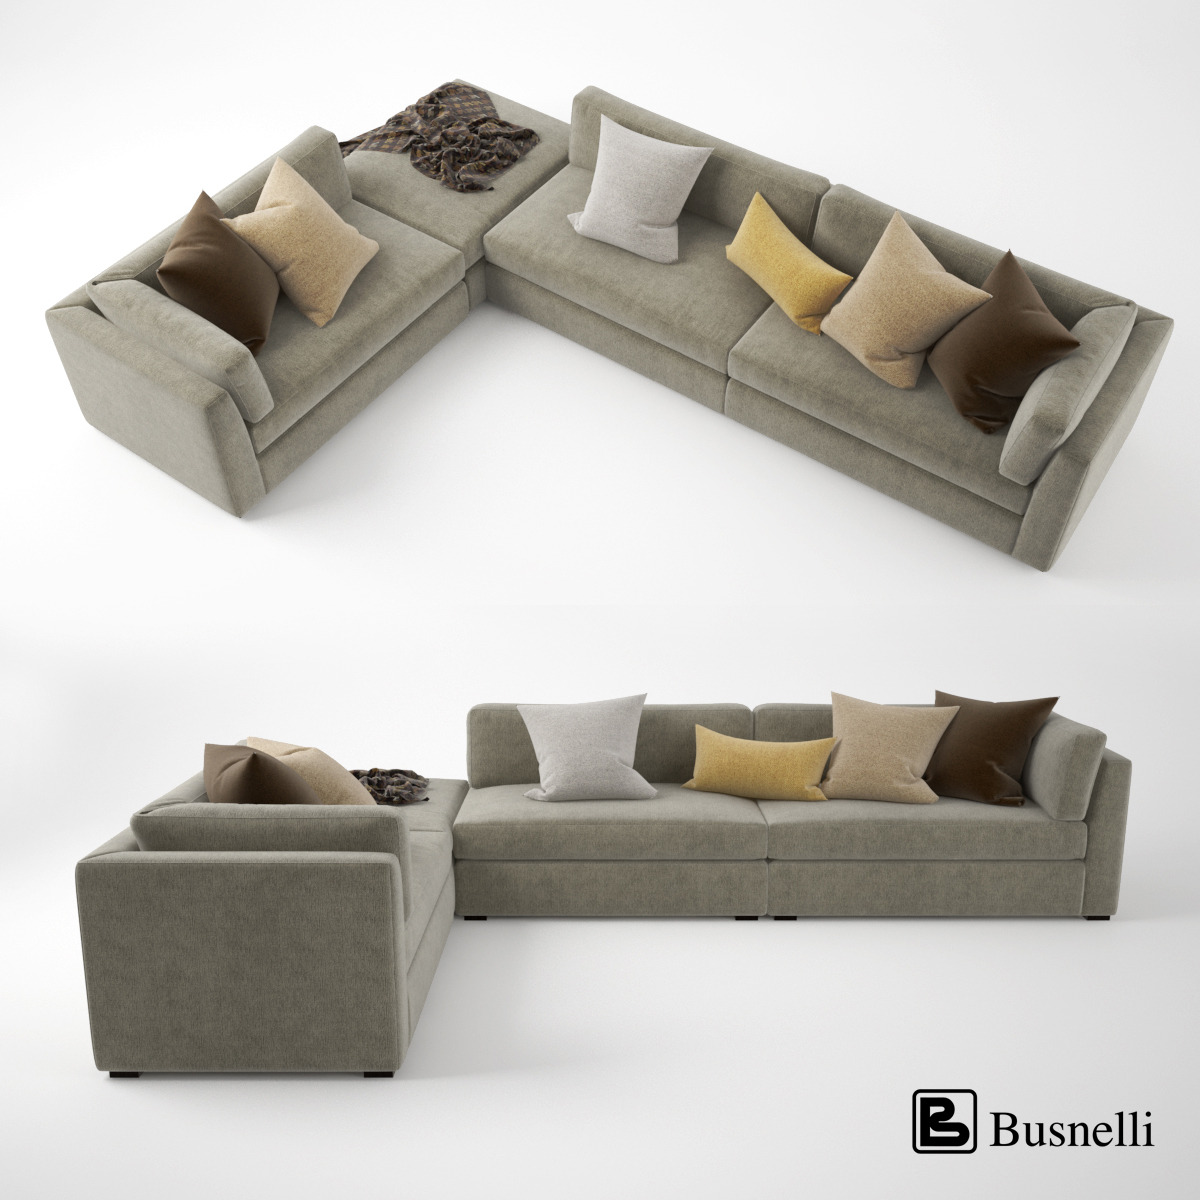 Preview Image Set/Busnelli Oh-mar Corner Sectional Sofa (1).jpg ... : corner sectional sofa - Sectionals, Sofas & Couches